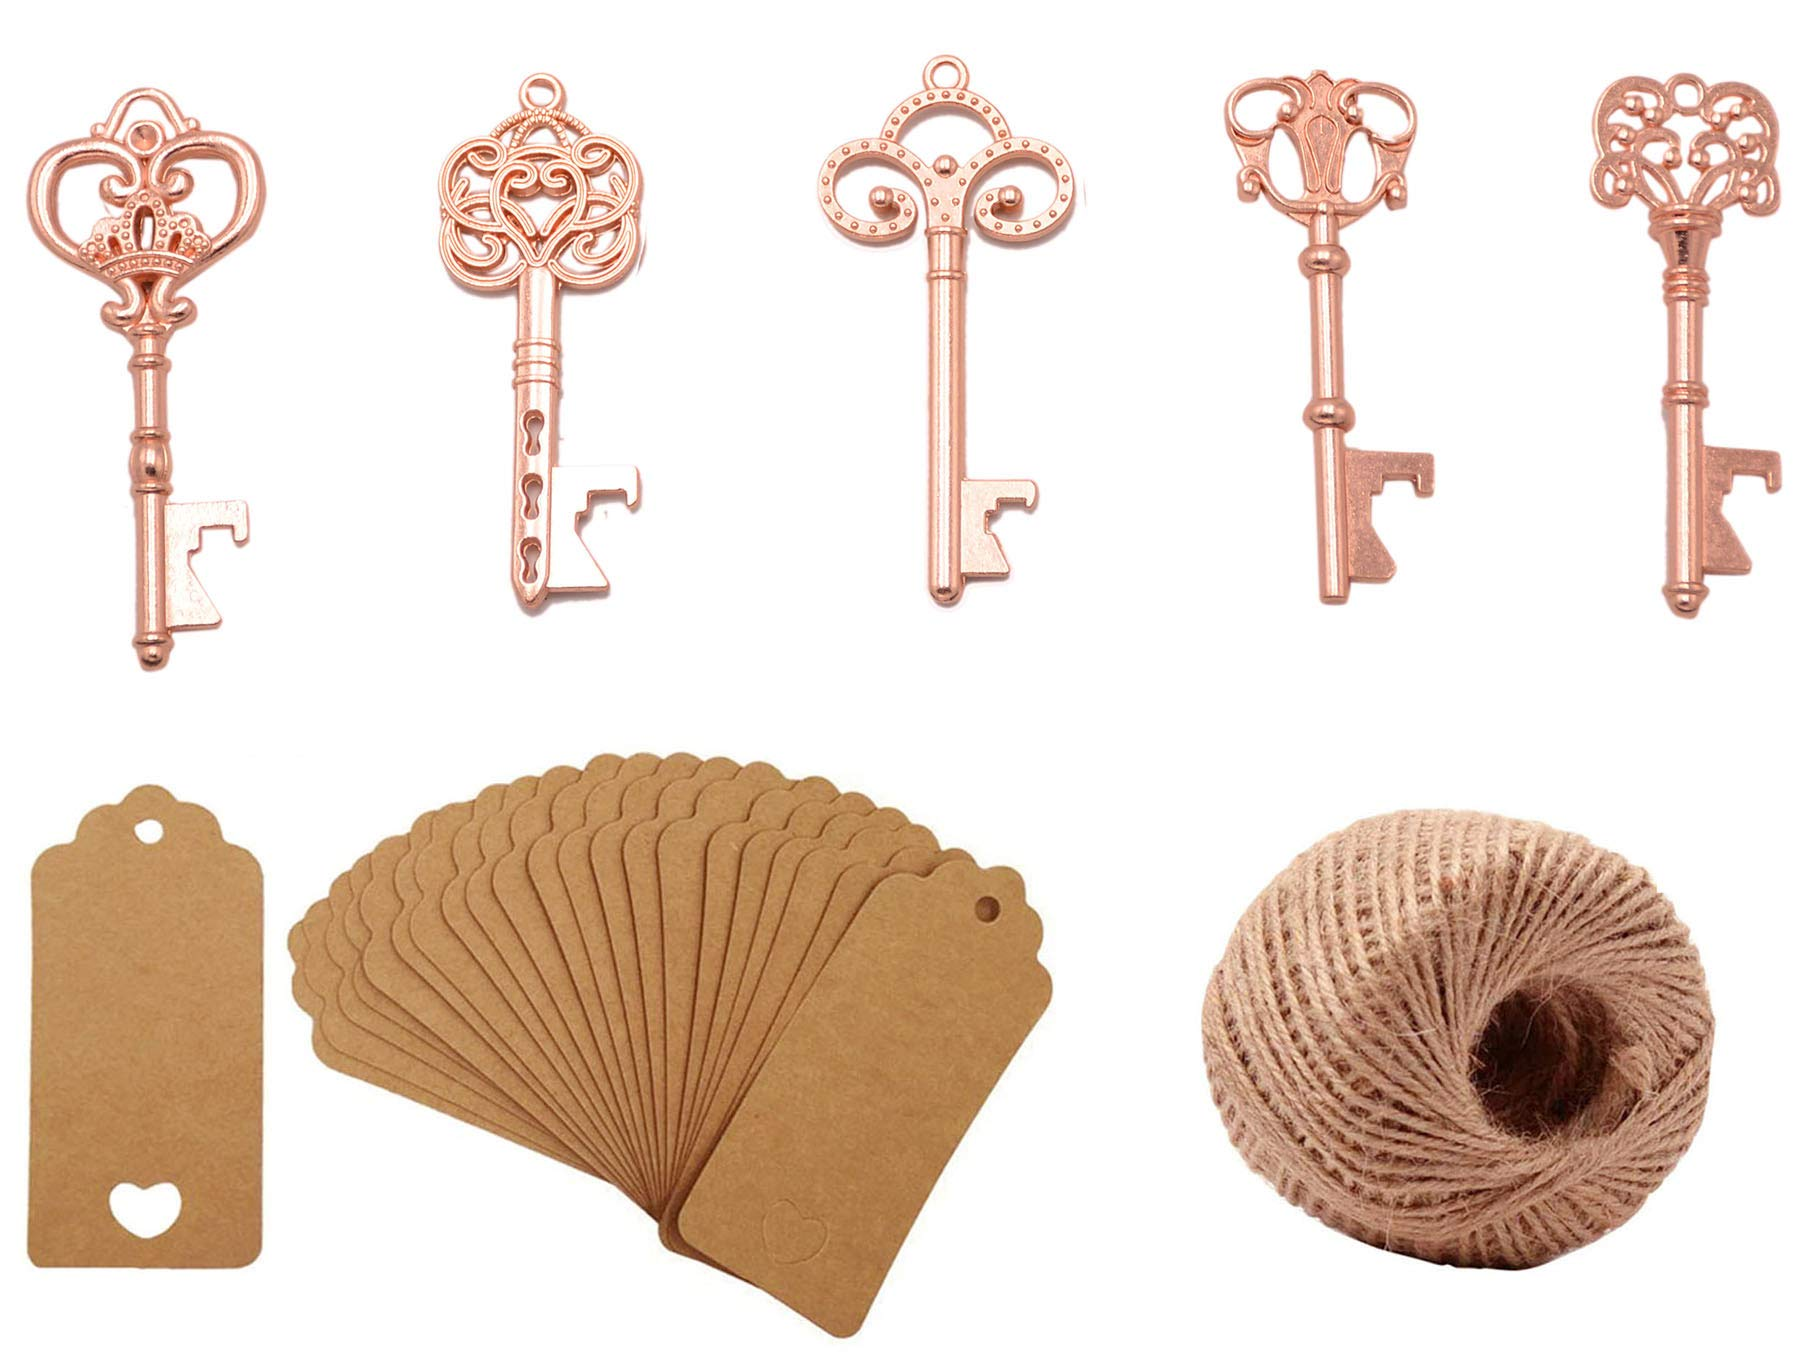 Yansanido Pack of 100 Skeleton Key Bottle Opener with Escort Tag Card and Twine for Wedding Favors for Guests Party Favors (100pcs mixed 5 styles Rose Gold)